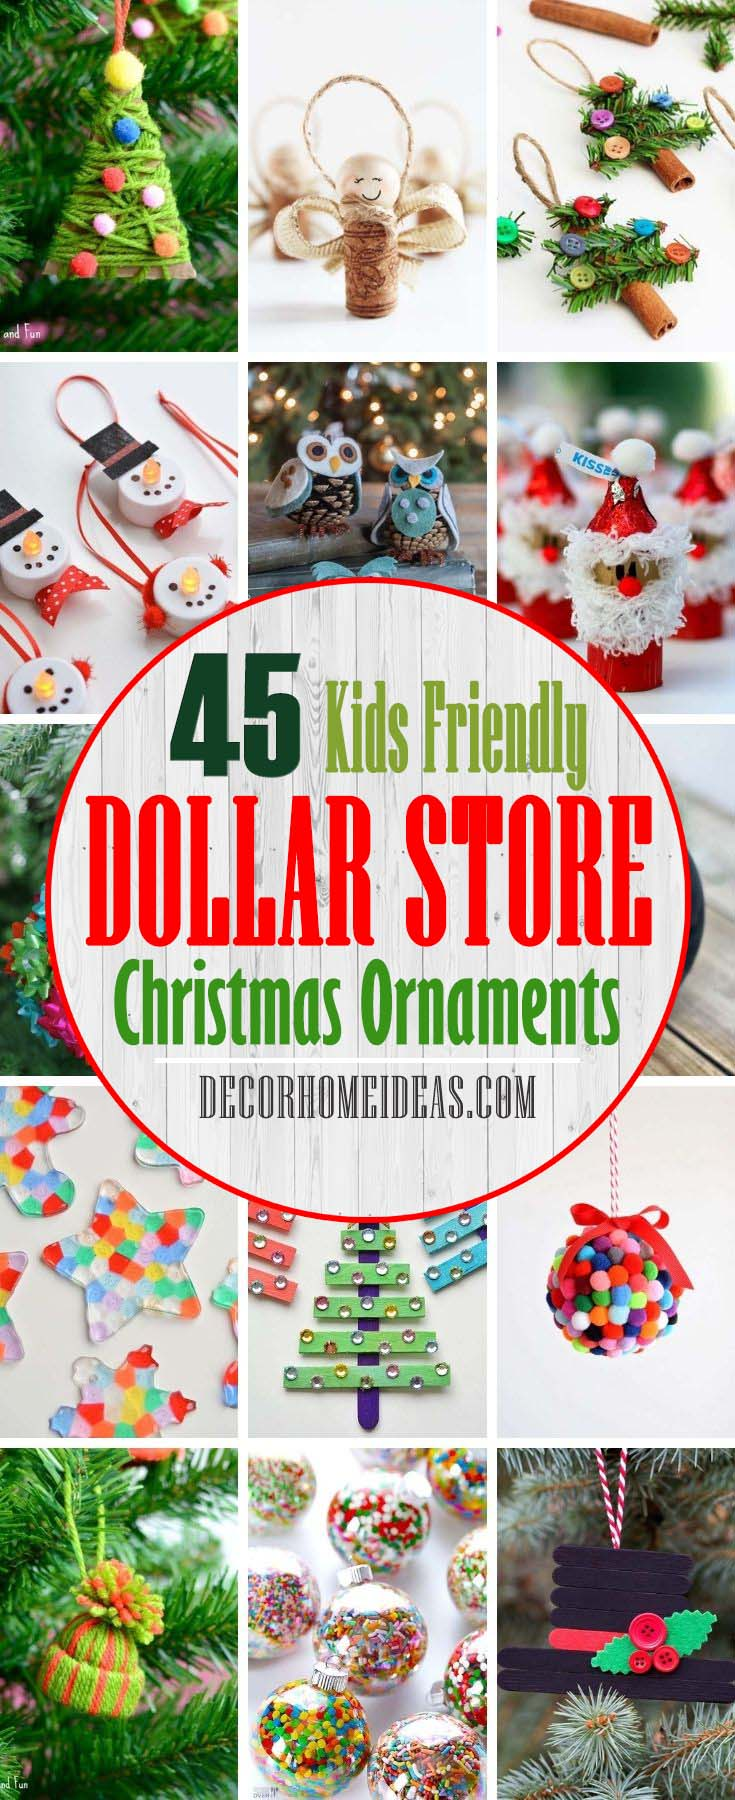 Best Dollar Store Christmas Ornaments To Do With Kids. Discover the Best <a href=